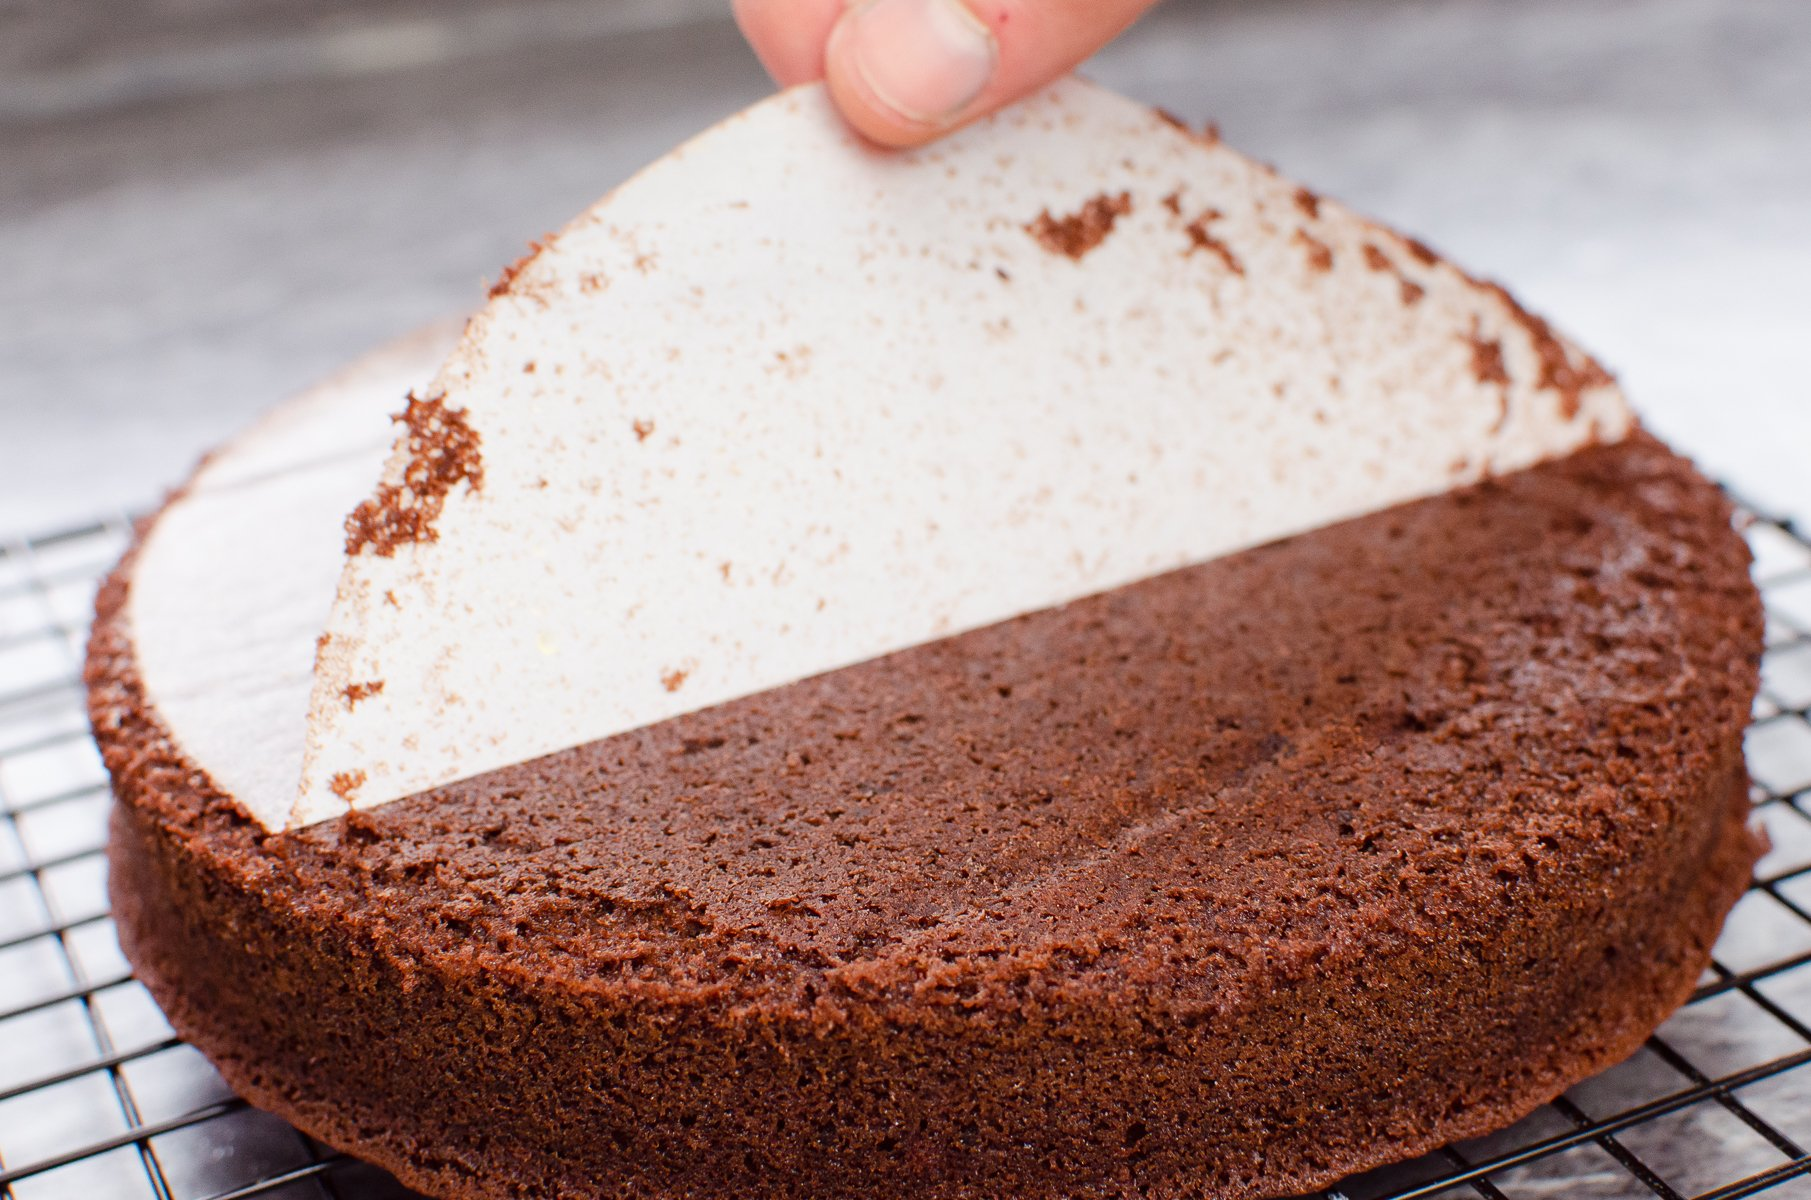 Removing the cake tin parchment paper liner away from the chocolate cake which is cooling on a wire rack